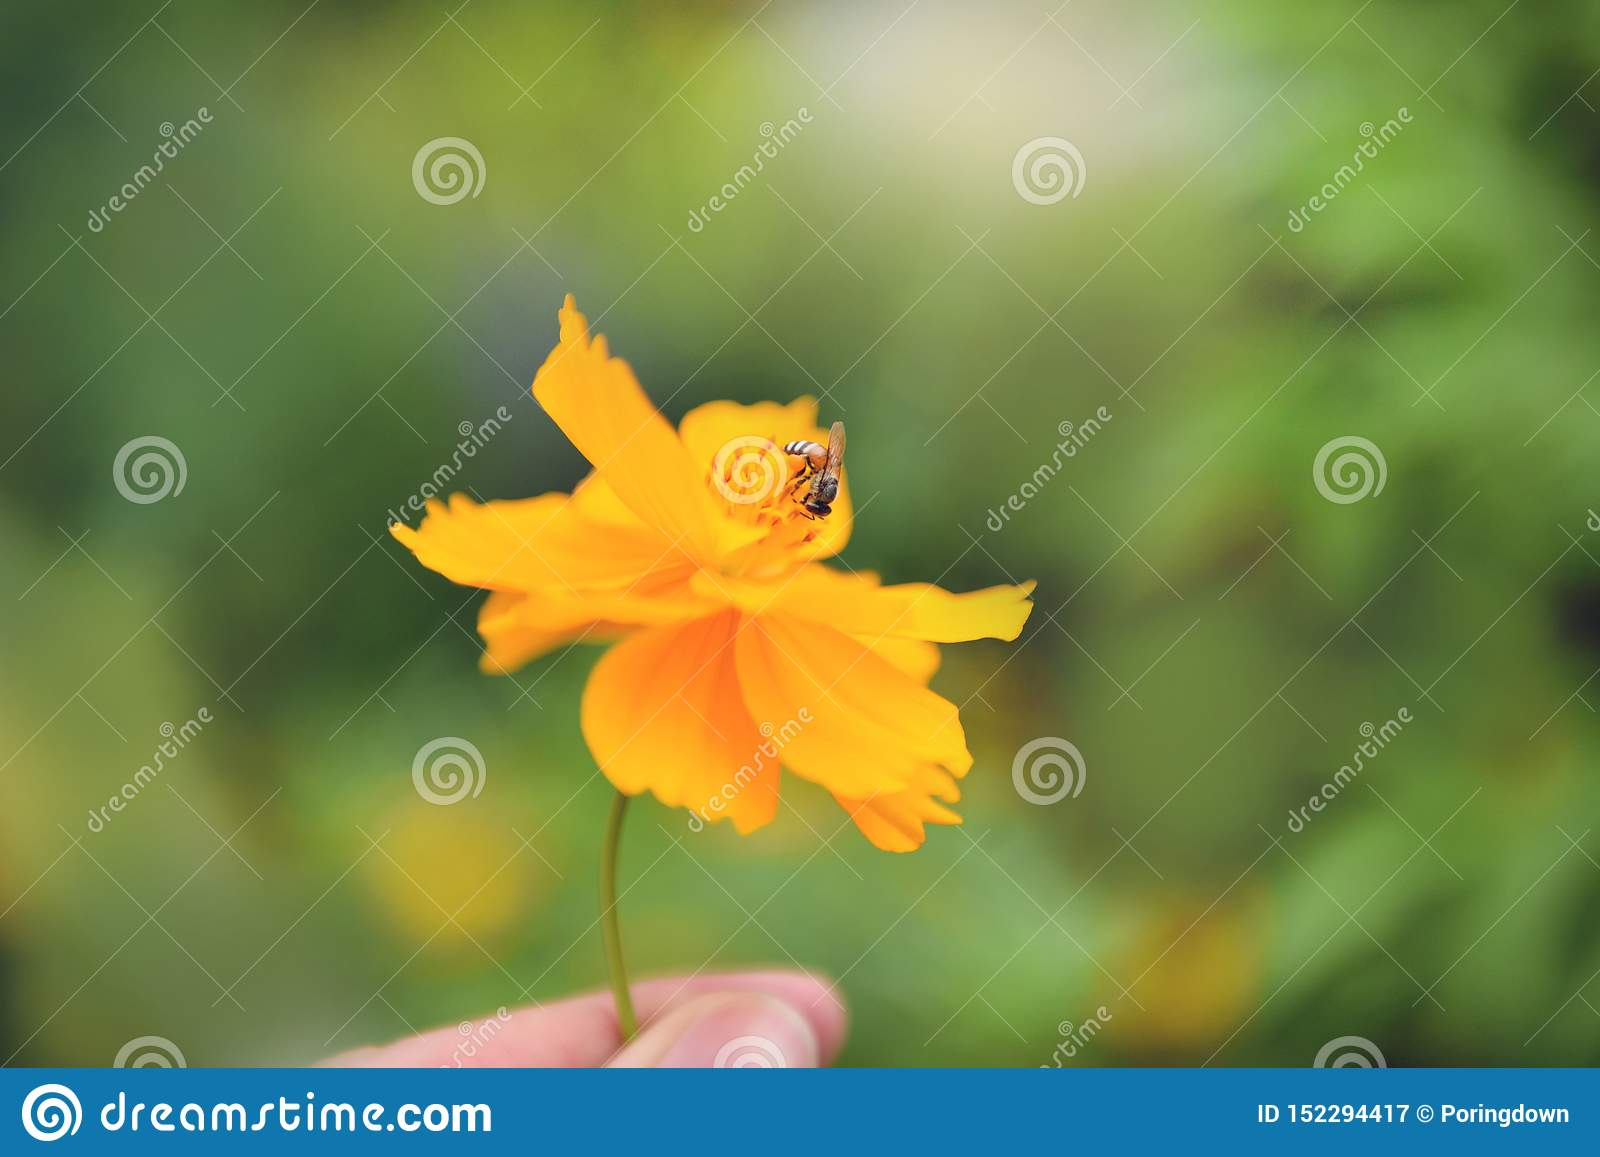 Yellow flower in hand with bee on pollen marigold flower in the nature green background